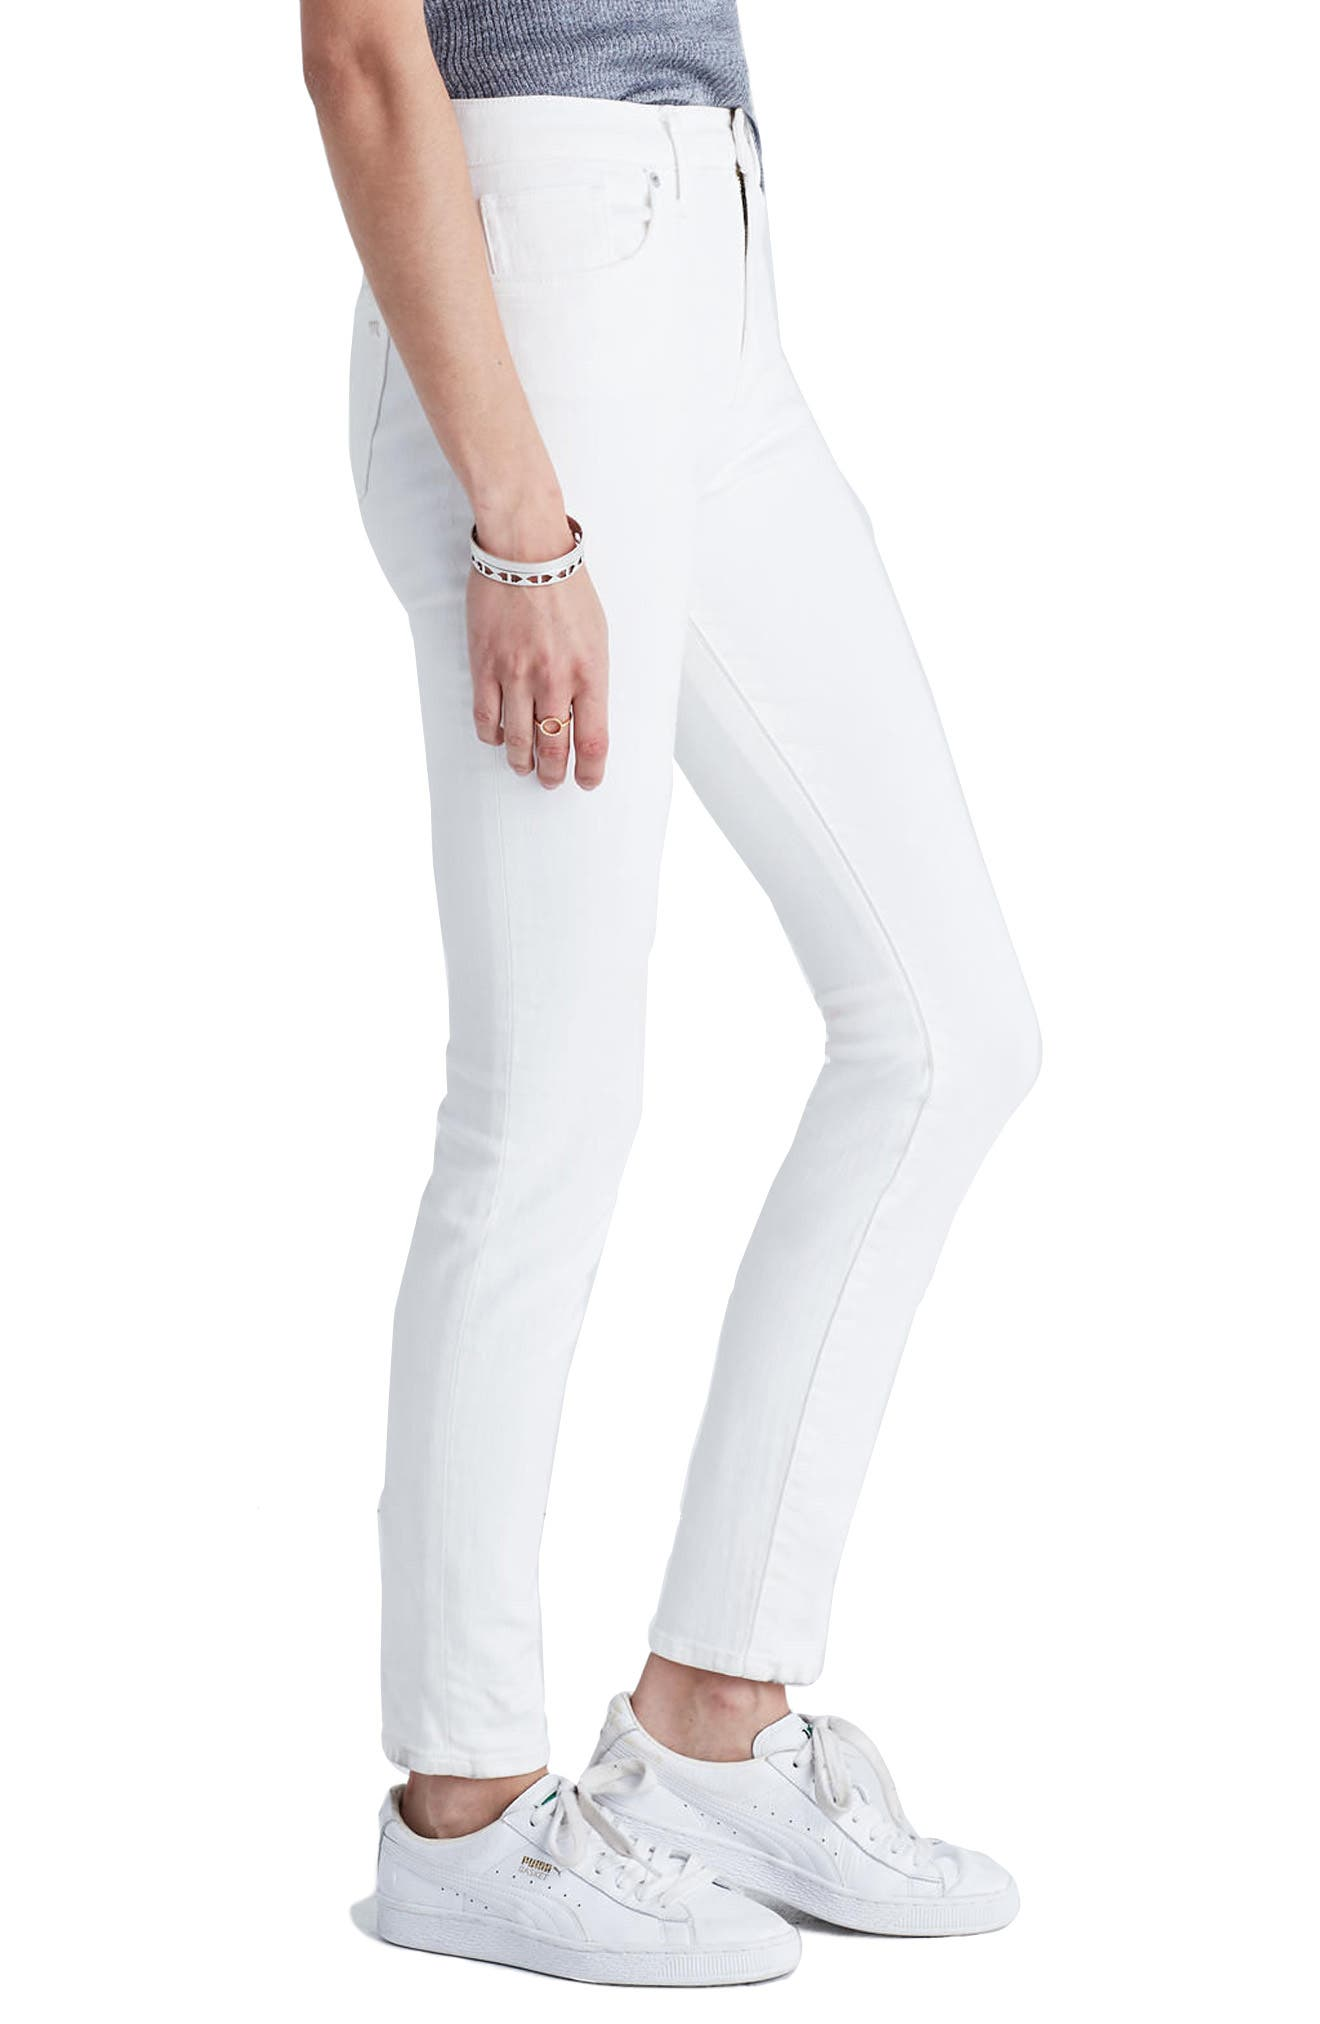 MADEWELL,                             9-Inch High-Rise Skinny Jeans,                             Alternate thumbnail 3, color,                             100